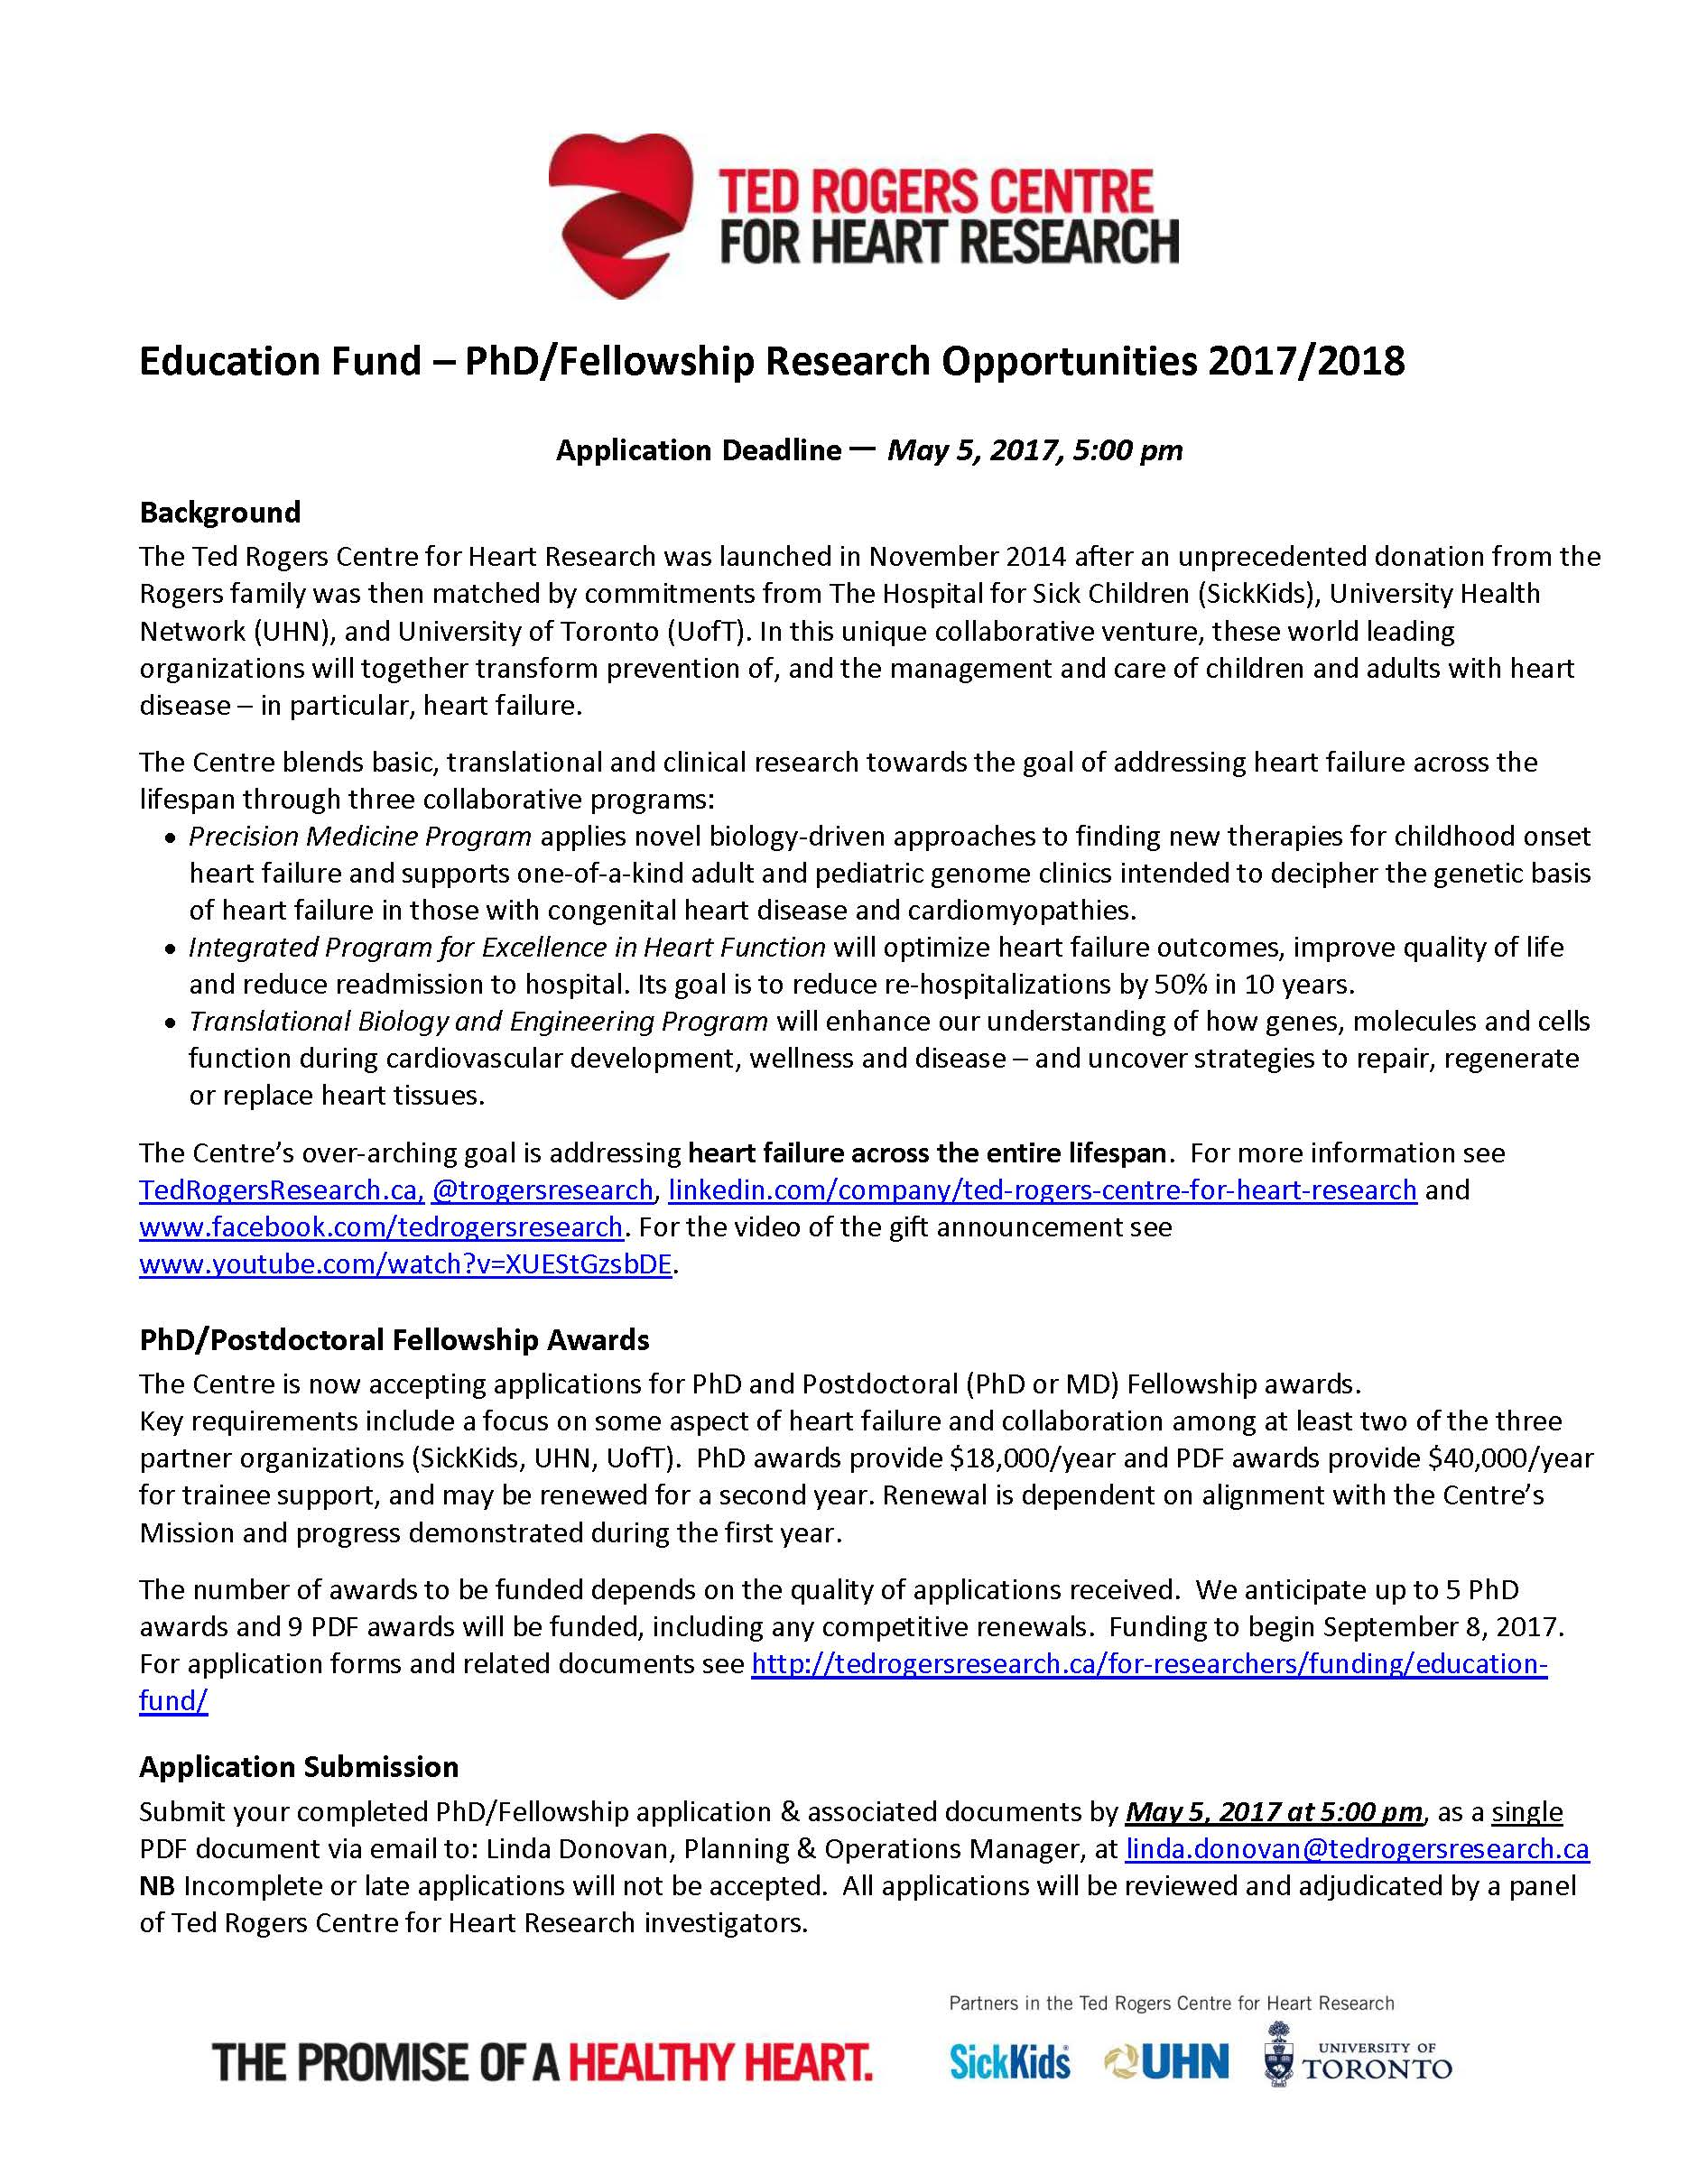 Ted Rogers Education Fund